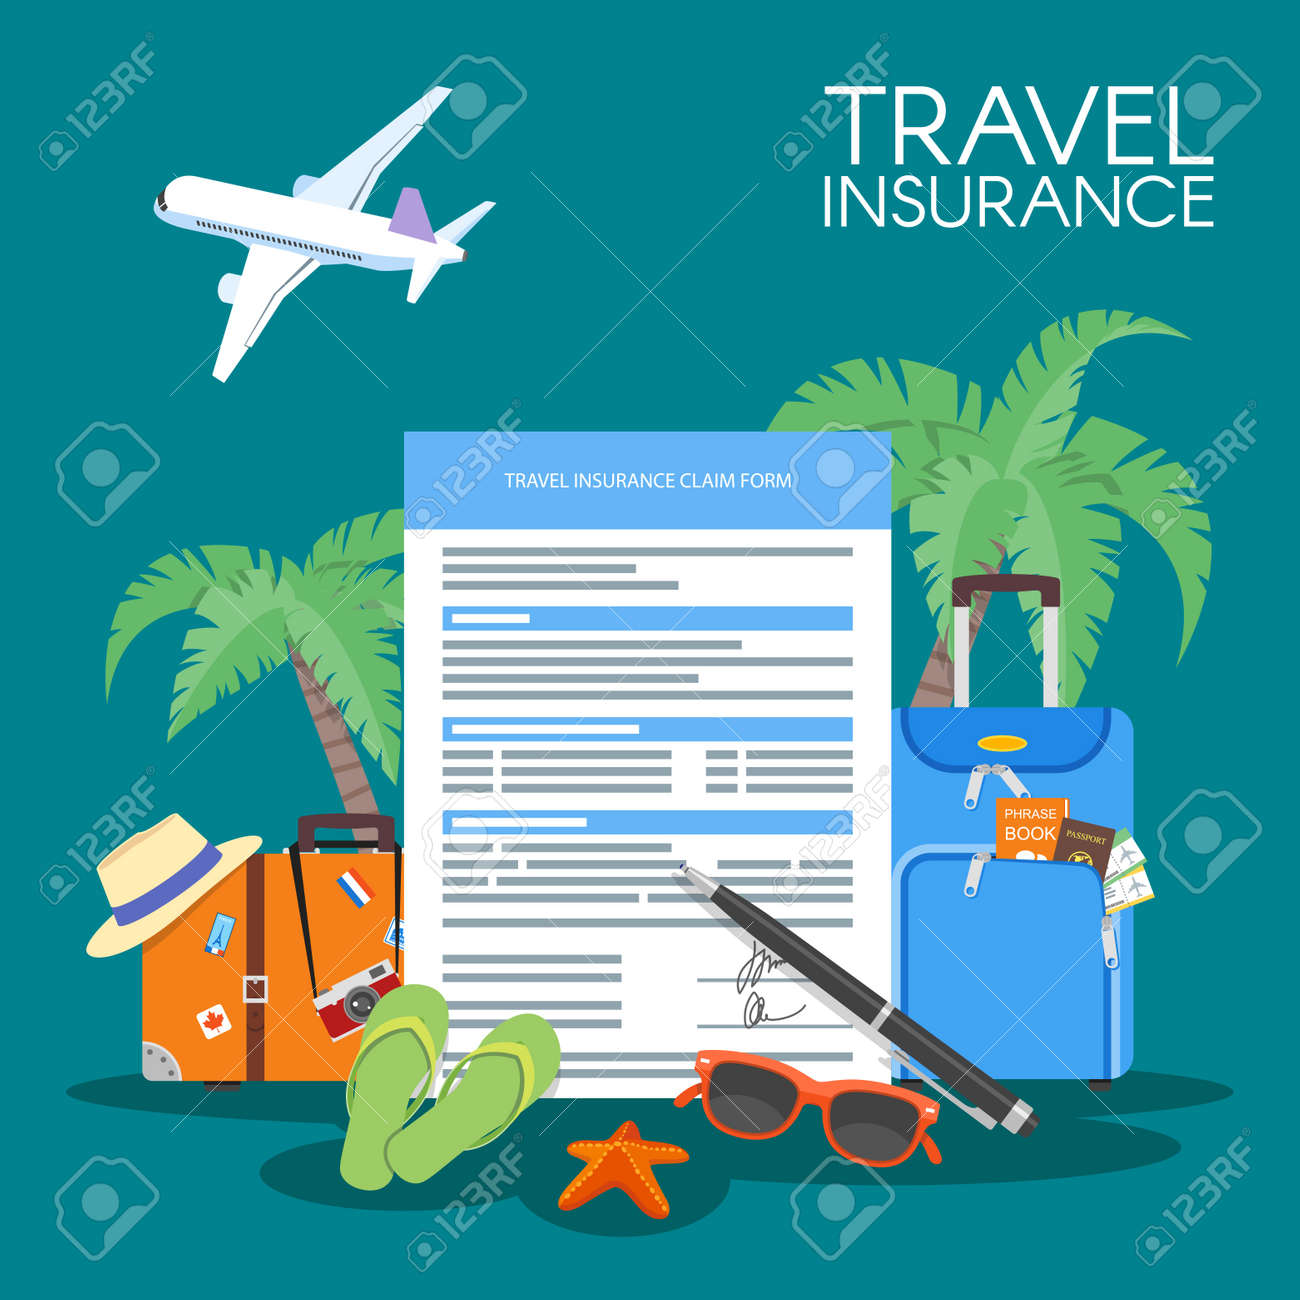 Travel insurance form concept vector illustration. Vacation background, luggage plane, palms. - 53990693